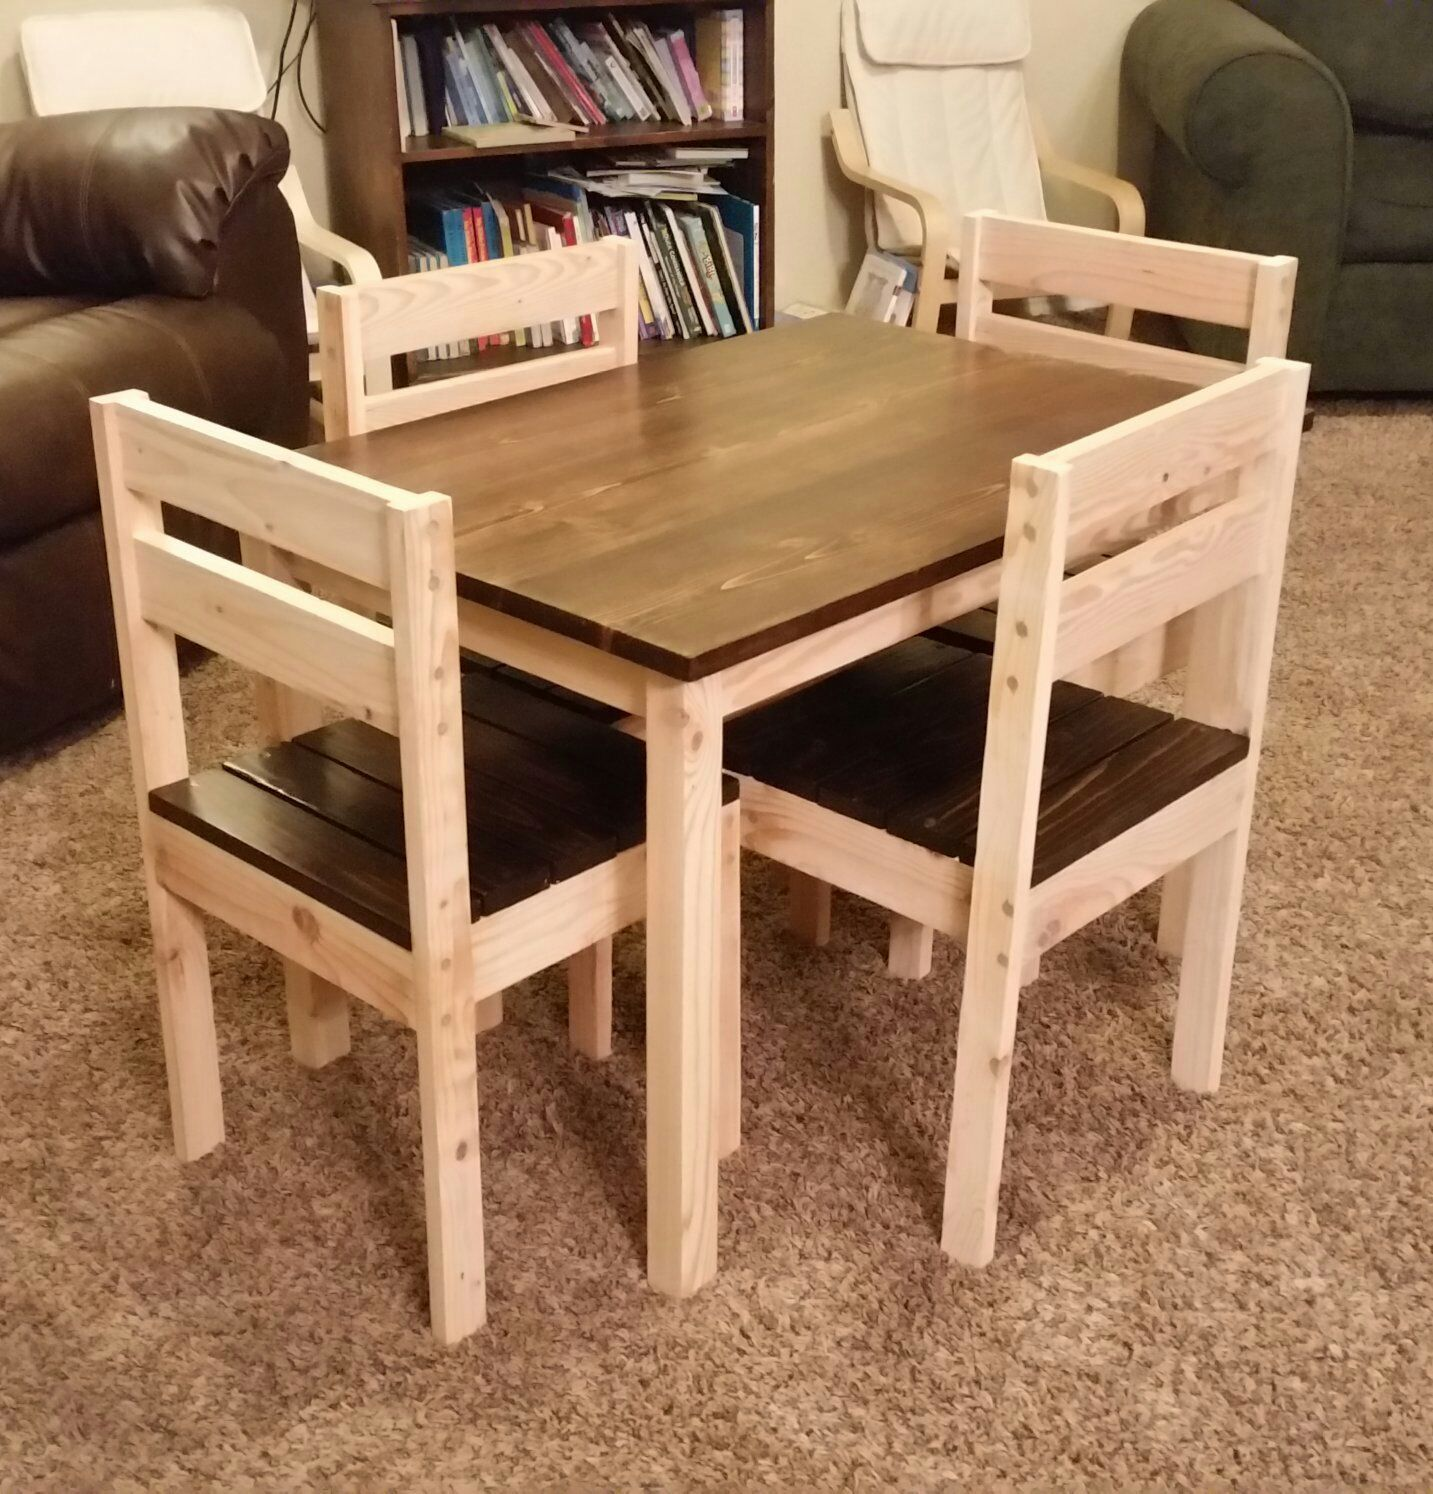 Where To Buy Toddler Table And Chairs Dining Chair Sets Uk Kids Do It Yourself Home Projects From